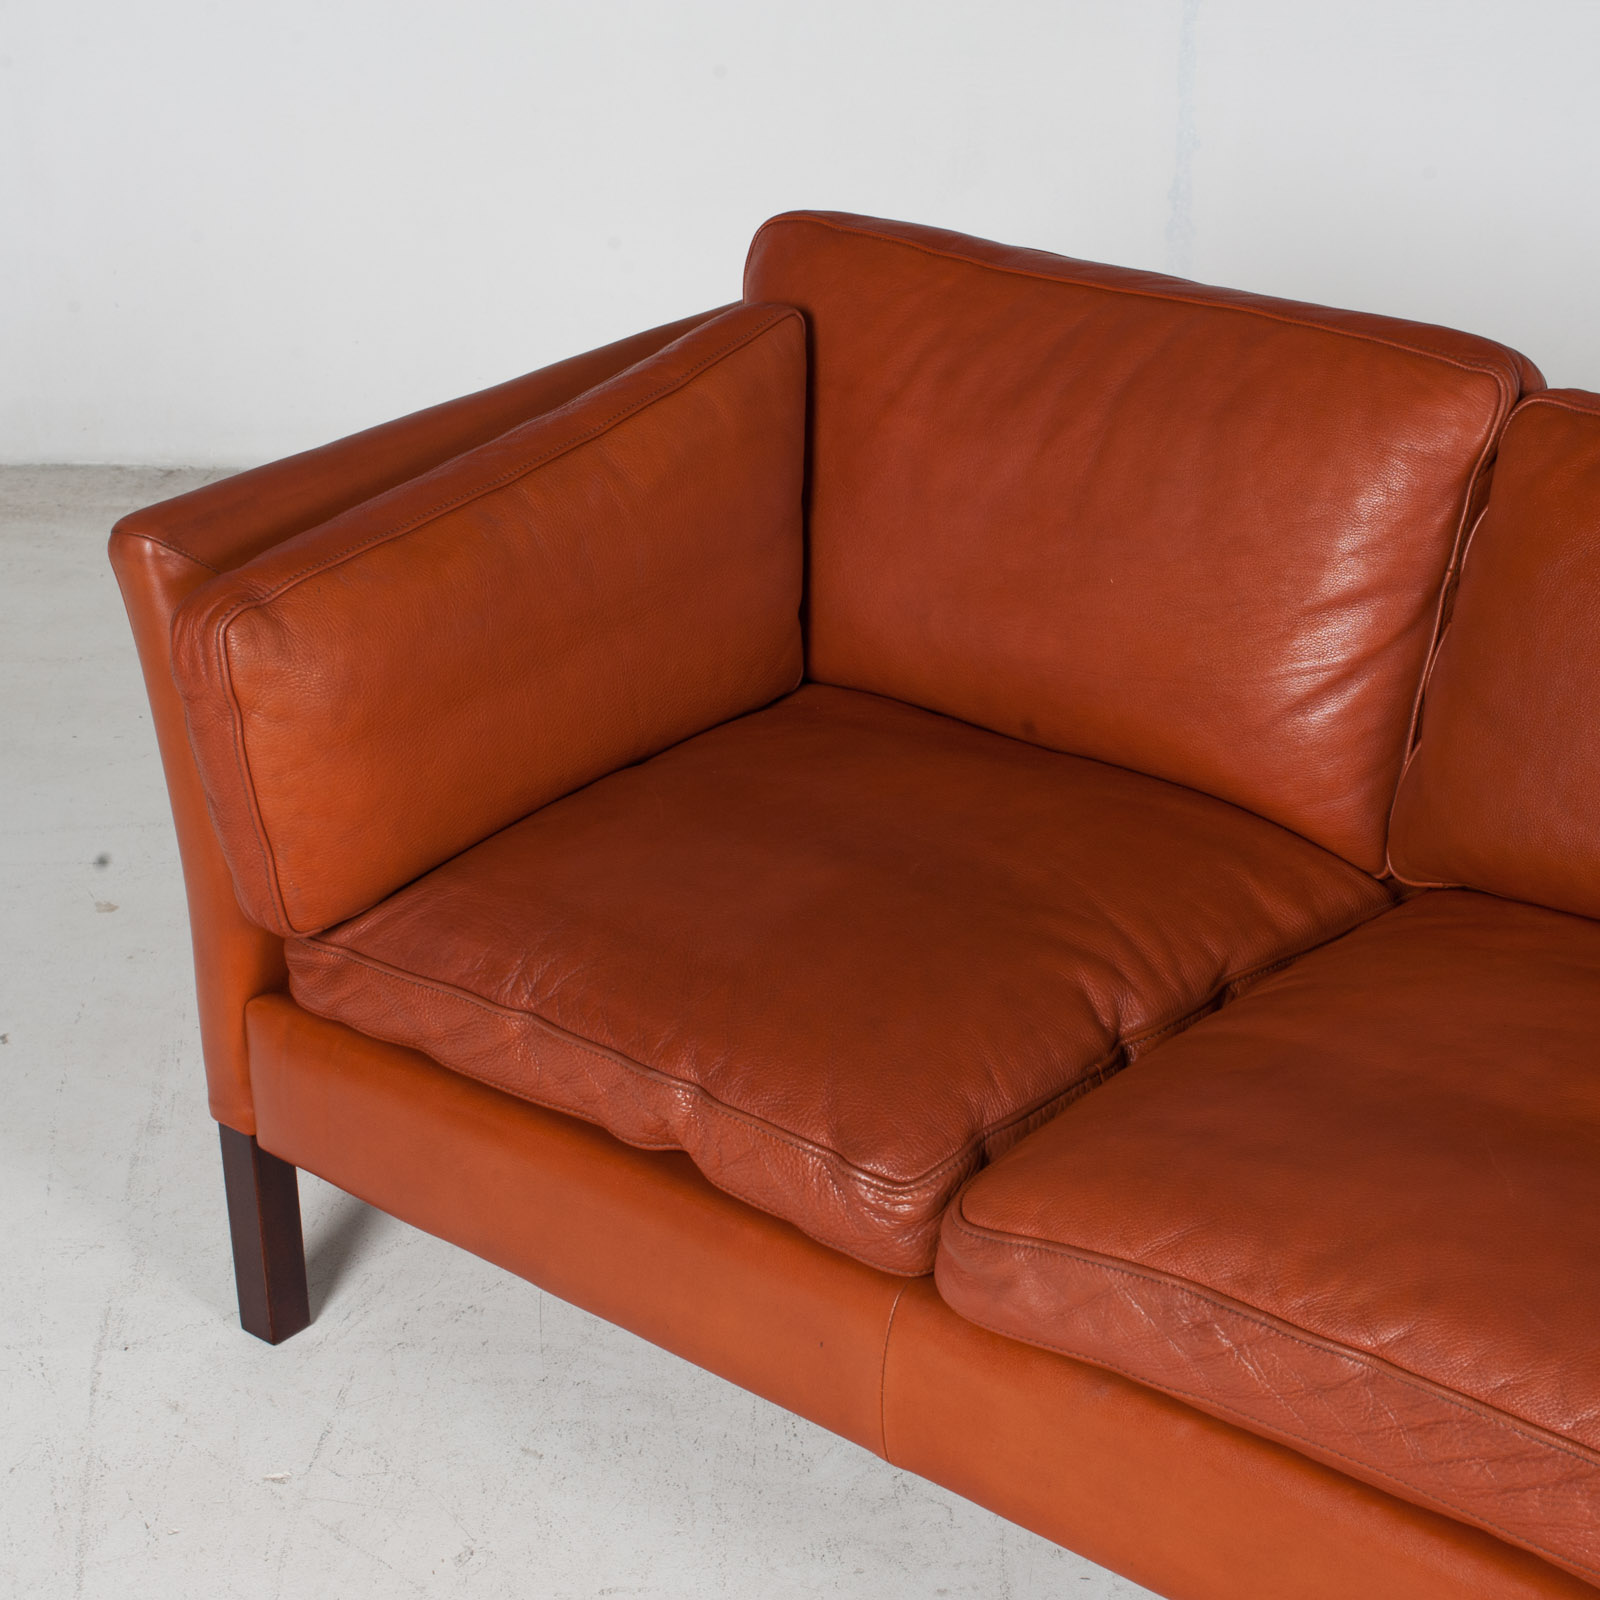 3 Seat Sofa By Stouby In Tan Leather, 1960s, Denmark 6